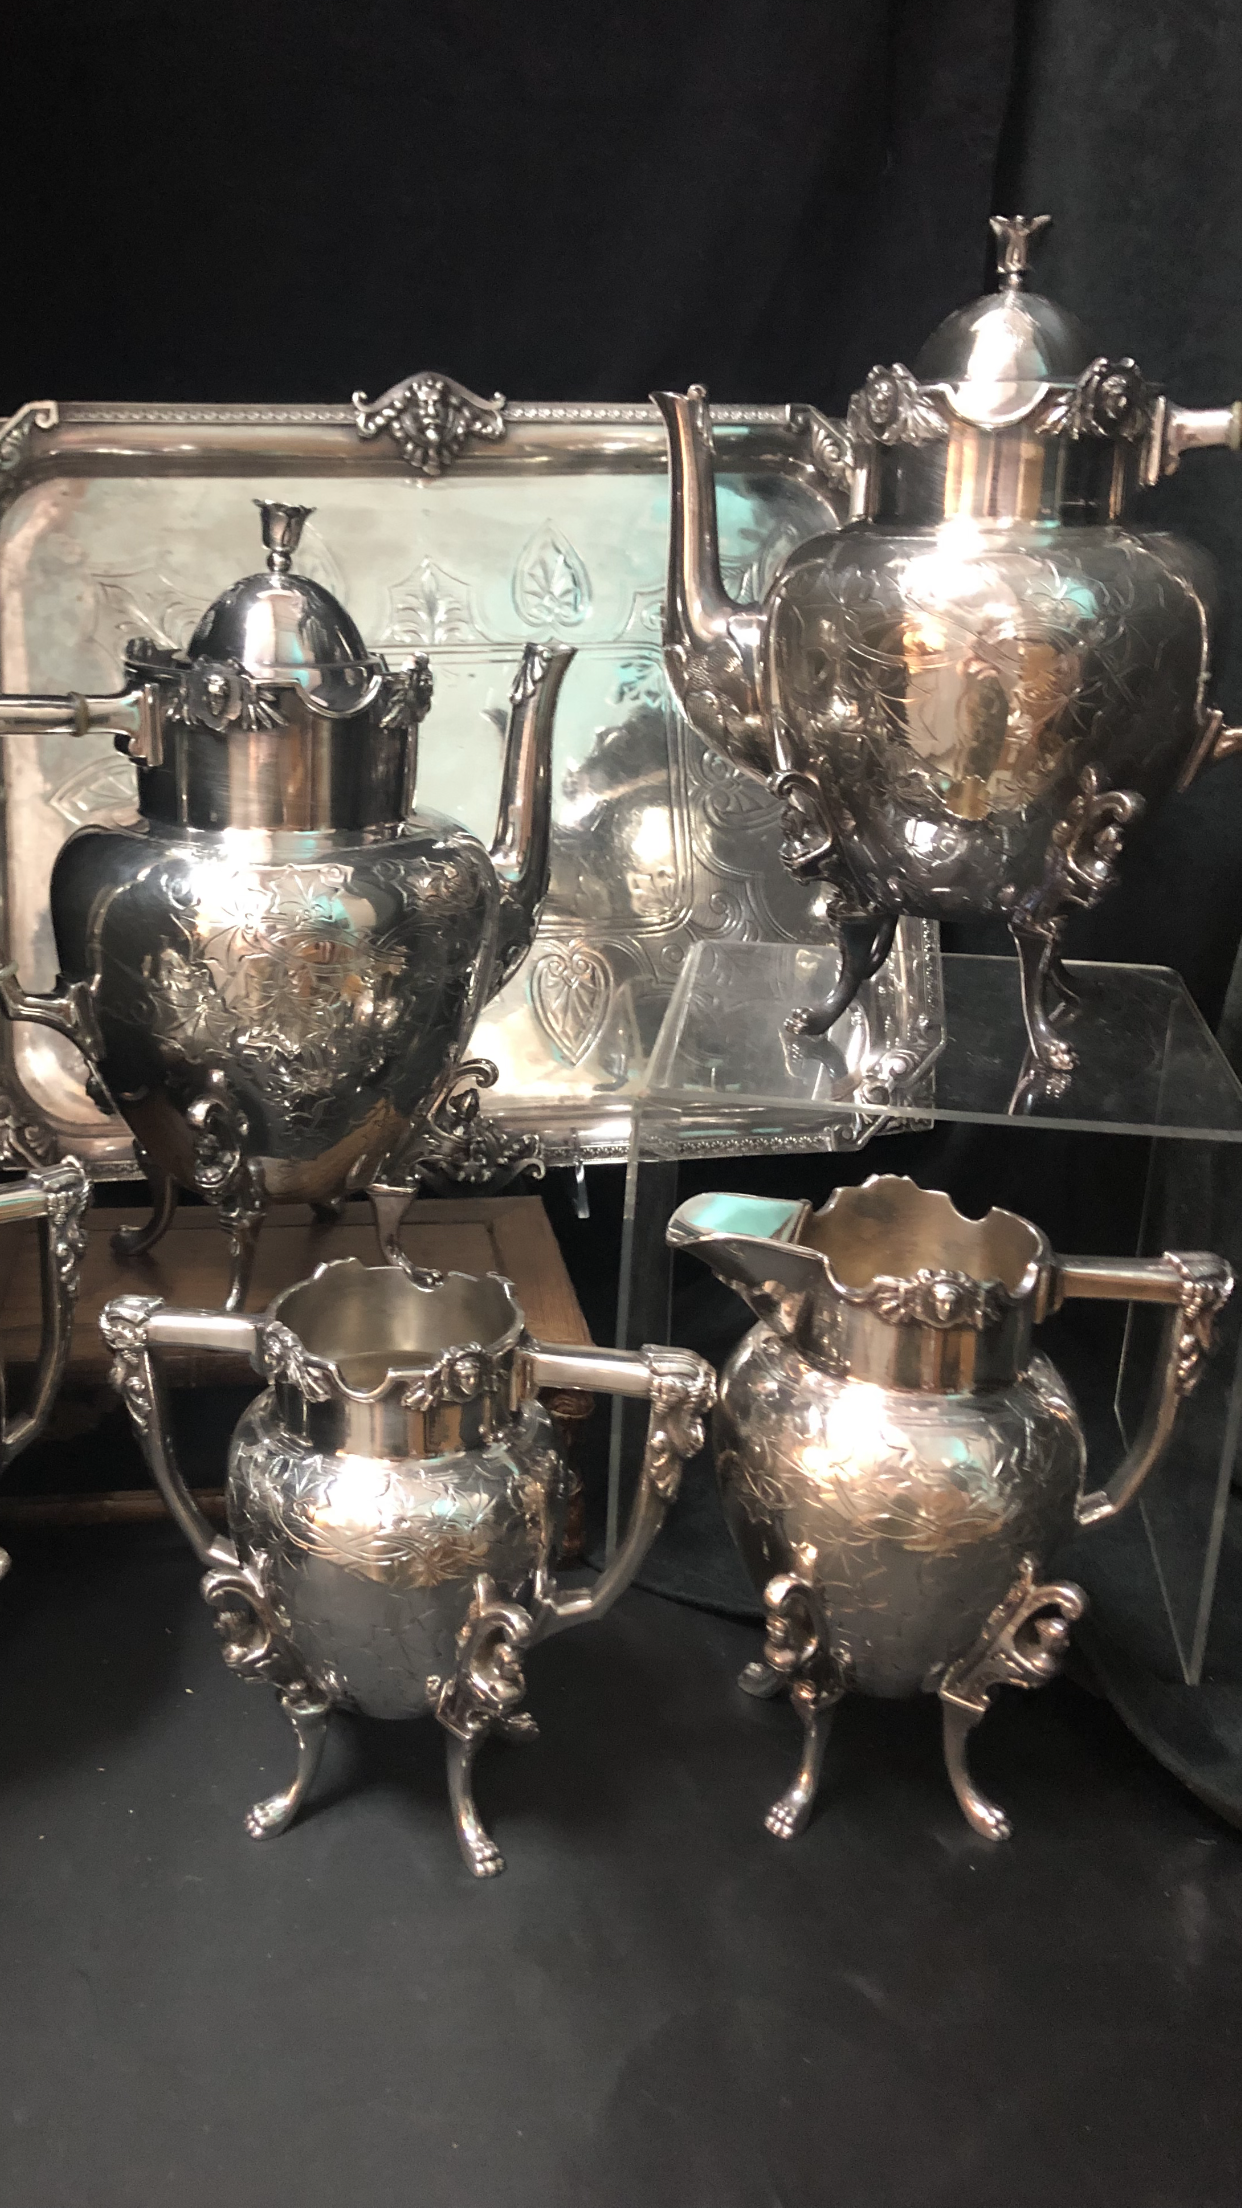 High end, unusual and sometimes antique pieces - available at Freighthouse !